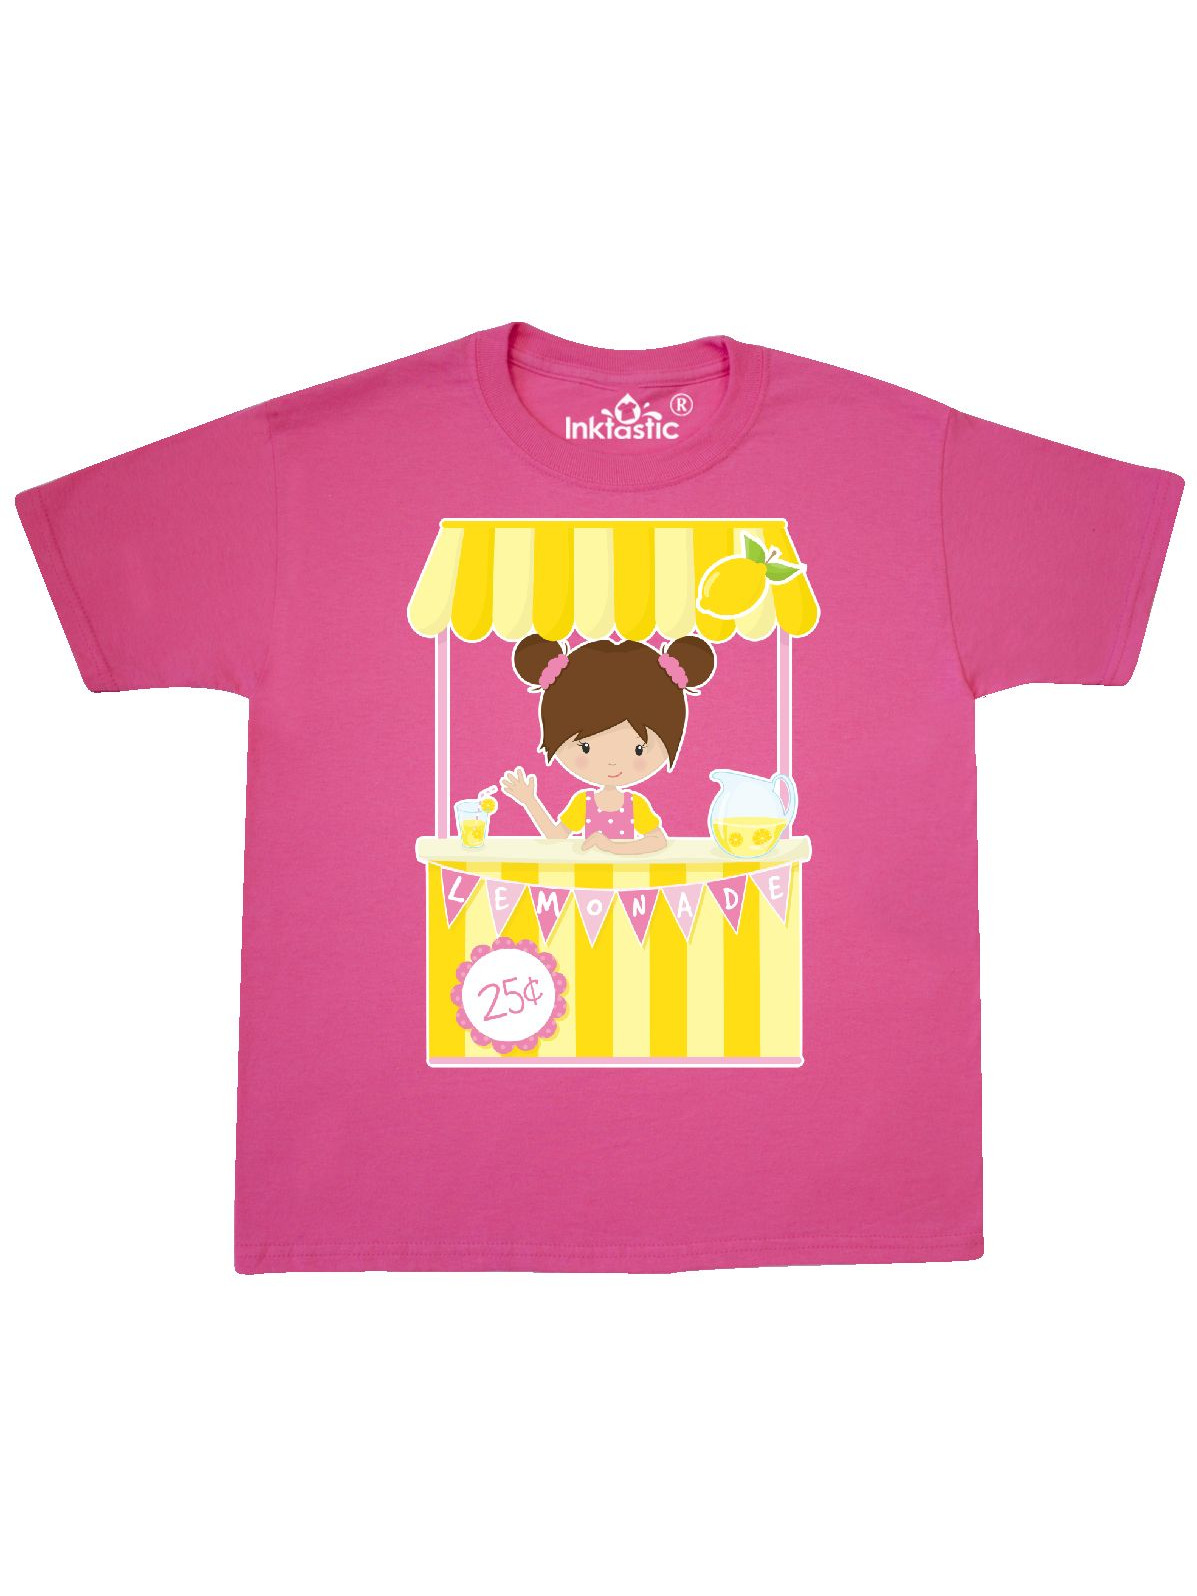 Girl with a Lemonade Stand Youth T-Shirt